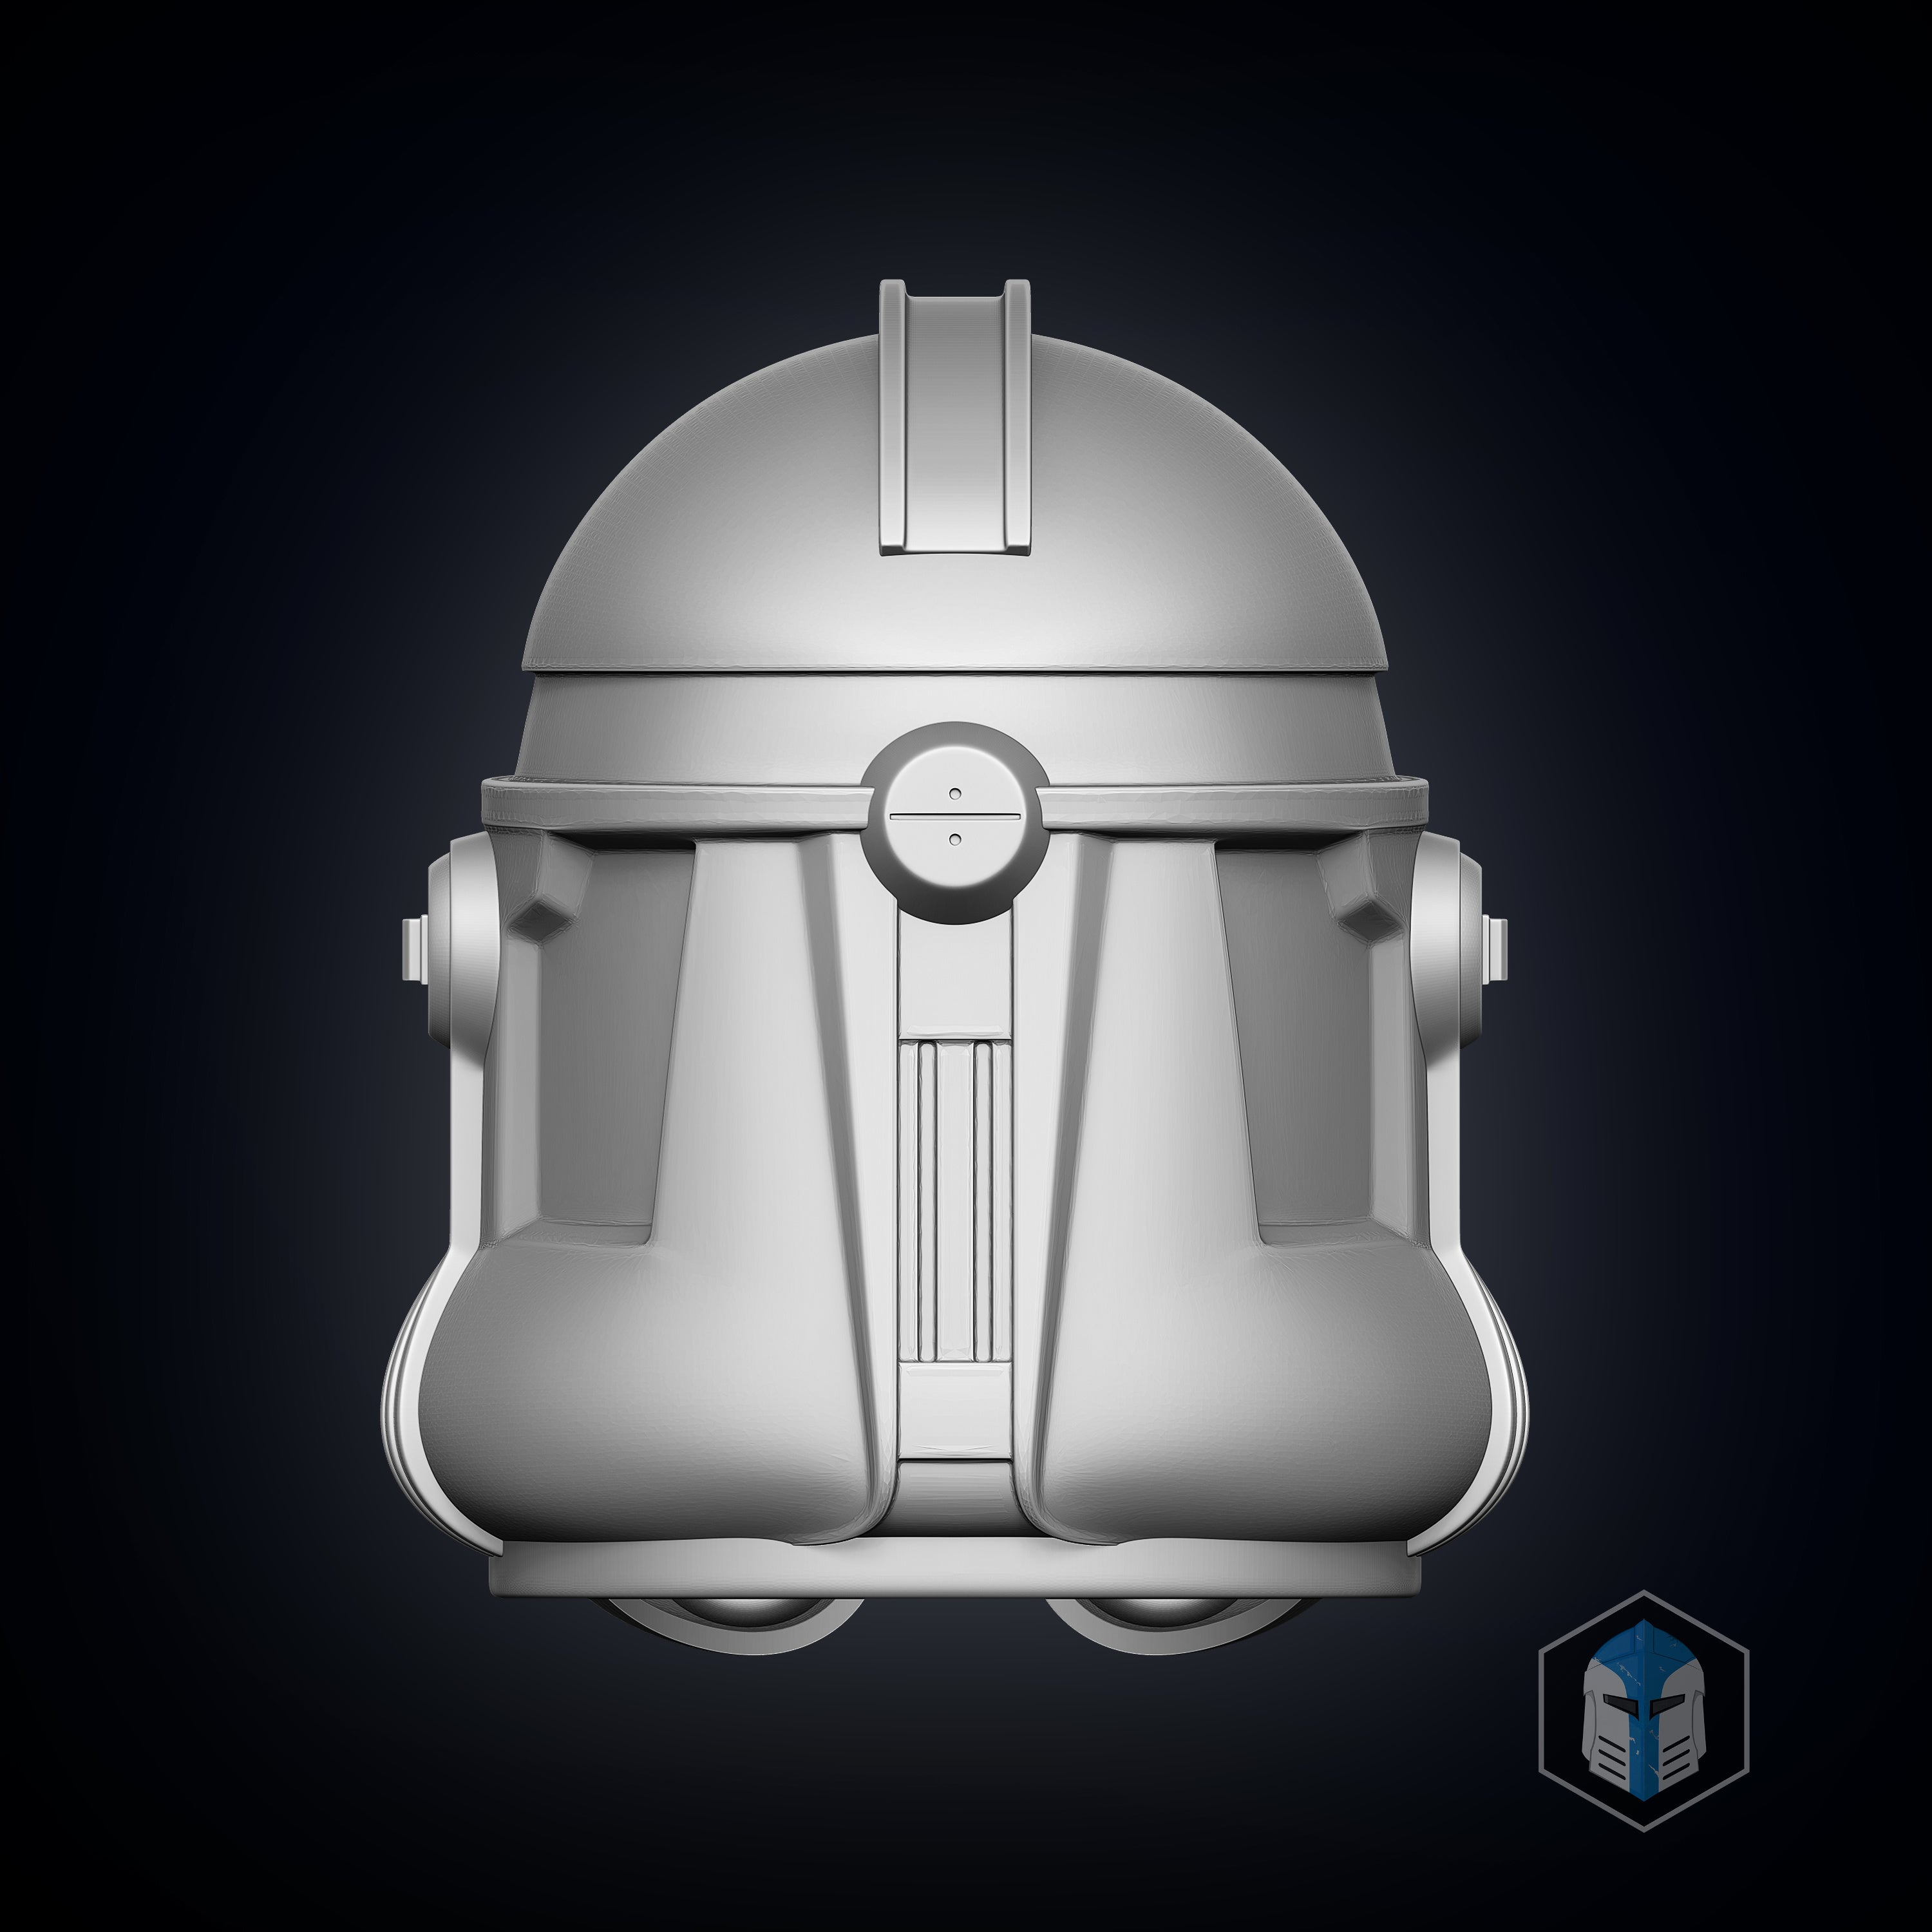 Phase 2 Clone Trooper Helmet - 3D Print Files - Galactic Armory